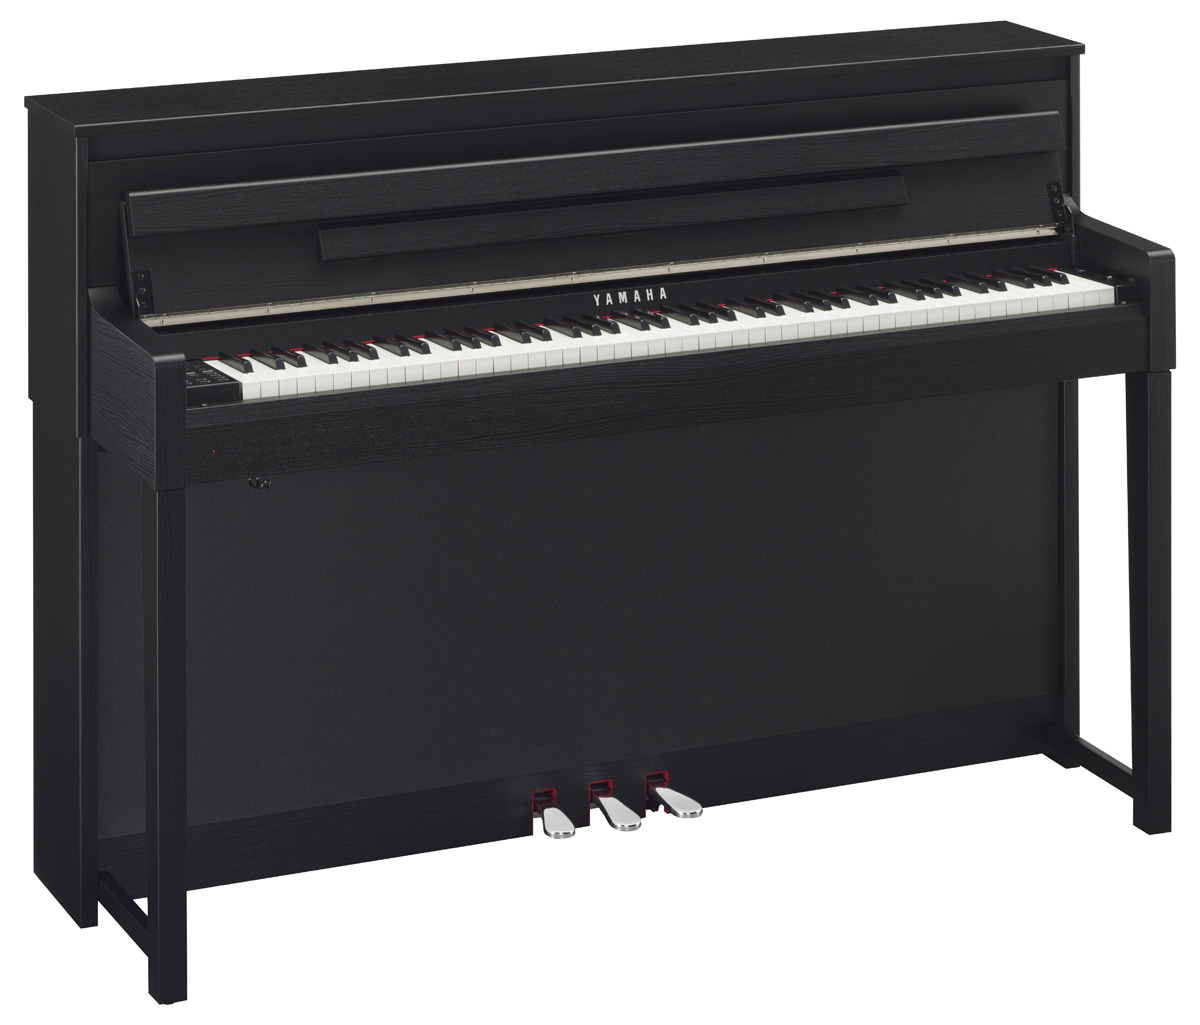 yamaha clp 585 clavinova digital piano in black walnut. Black Bedroom Furniture Sets. Home Design Ideas